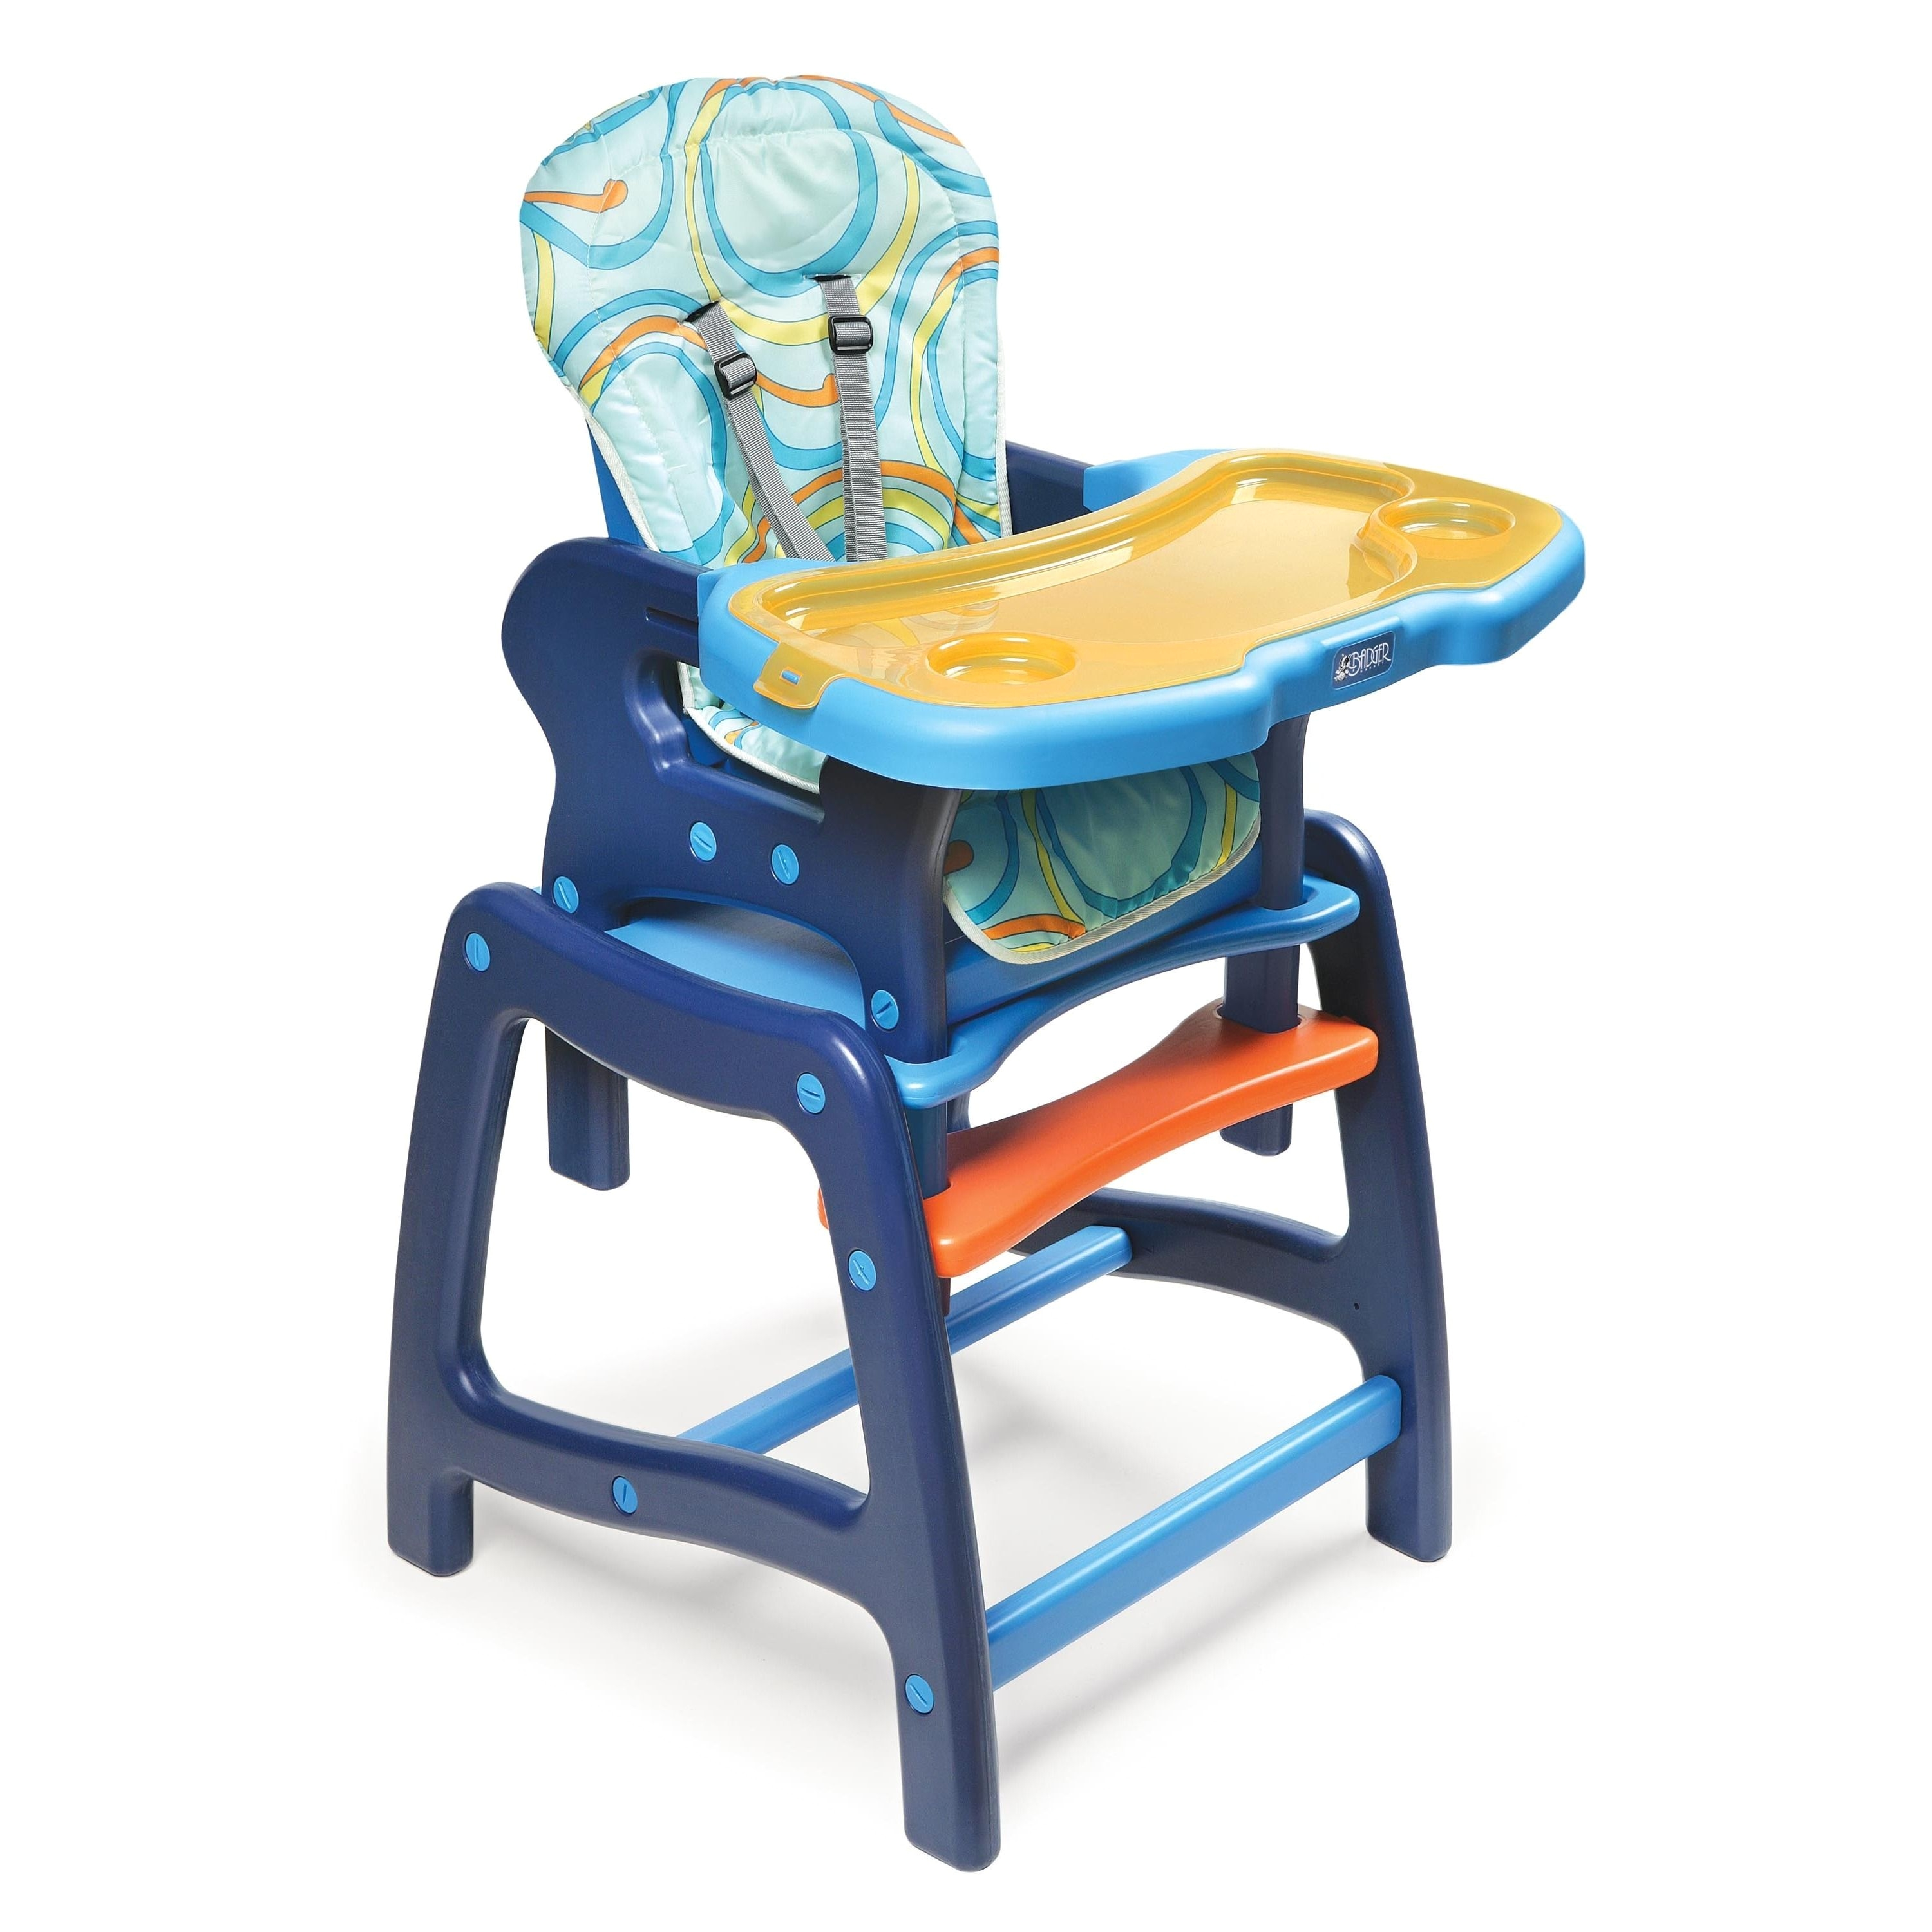 Fisher Price Table and Chairs Blue Li Badger High Chair is for Use During the First Six Years Of Your